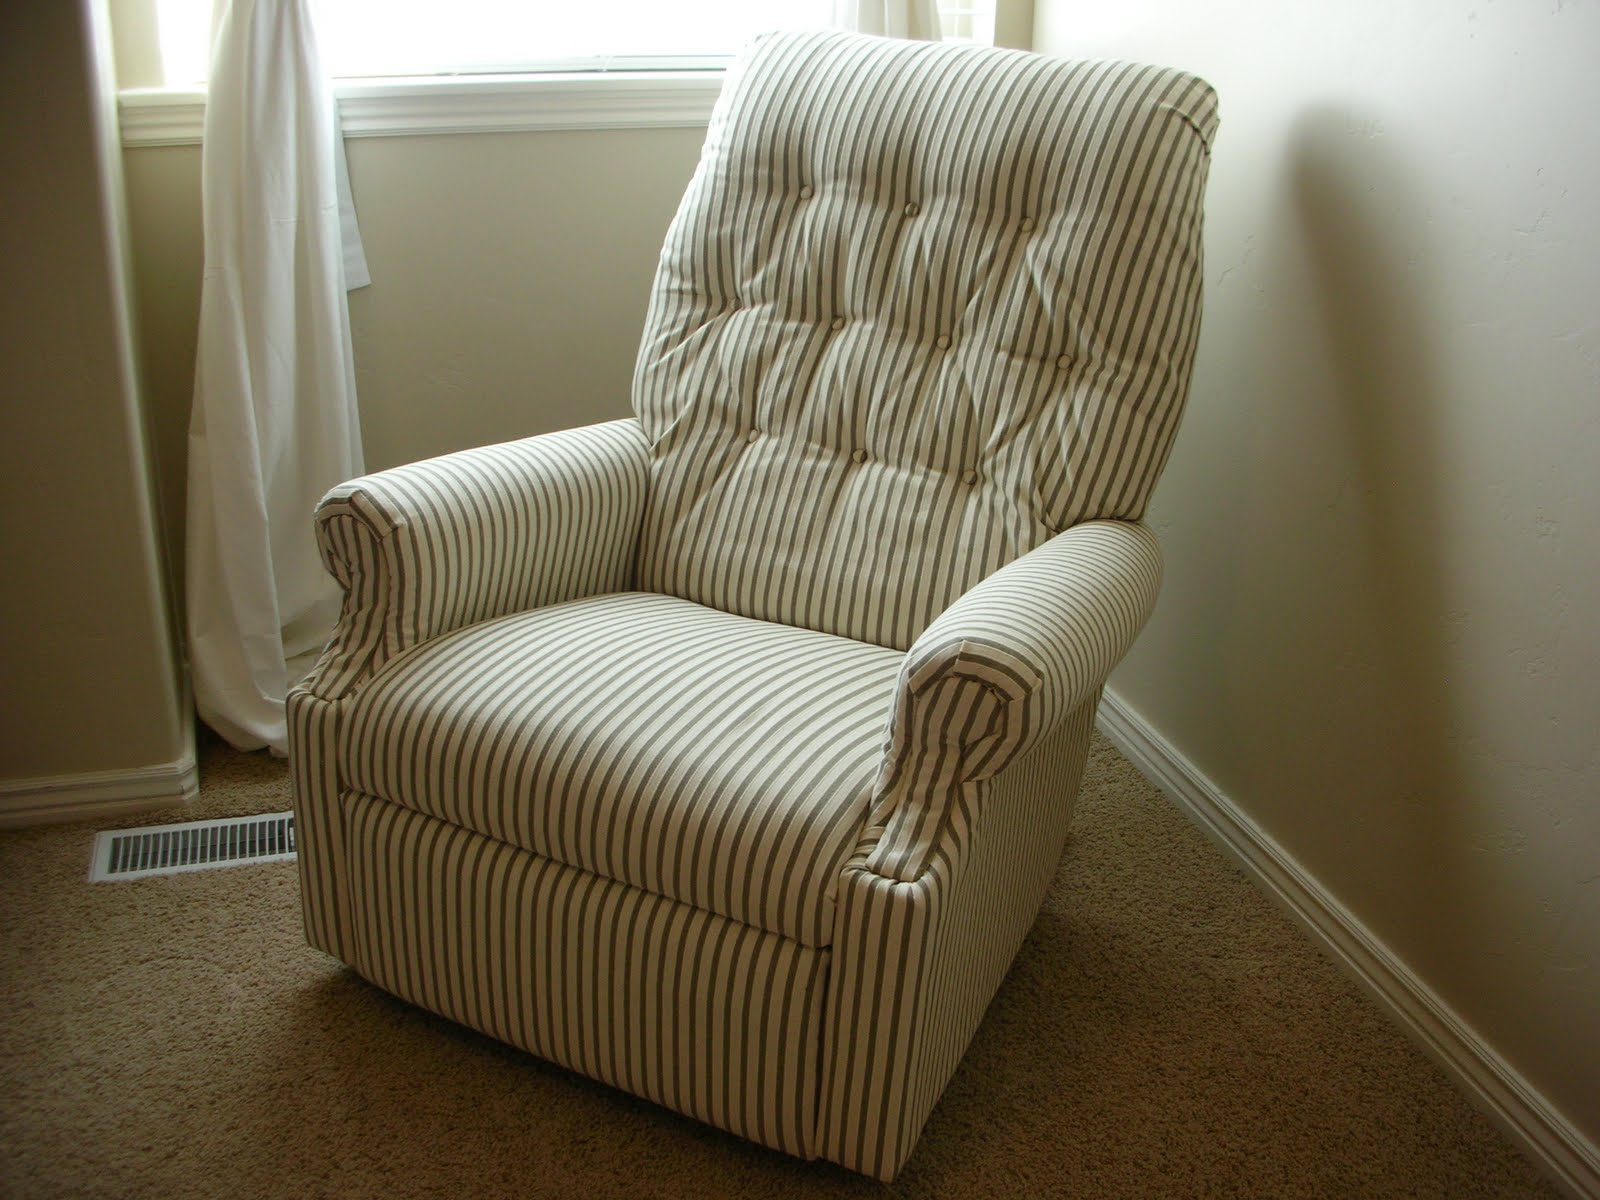 lazy boy recliner covers do it yourself divas: DIY: Reupholster An Old La Z Boy Recliner lazy boy recliner covers